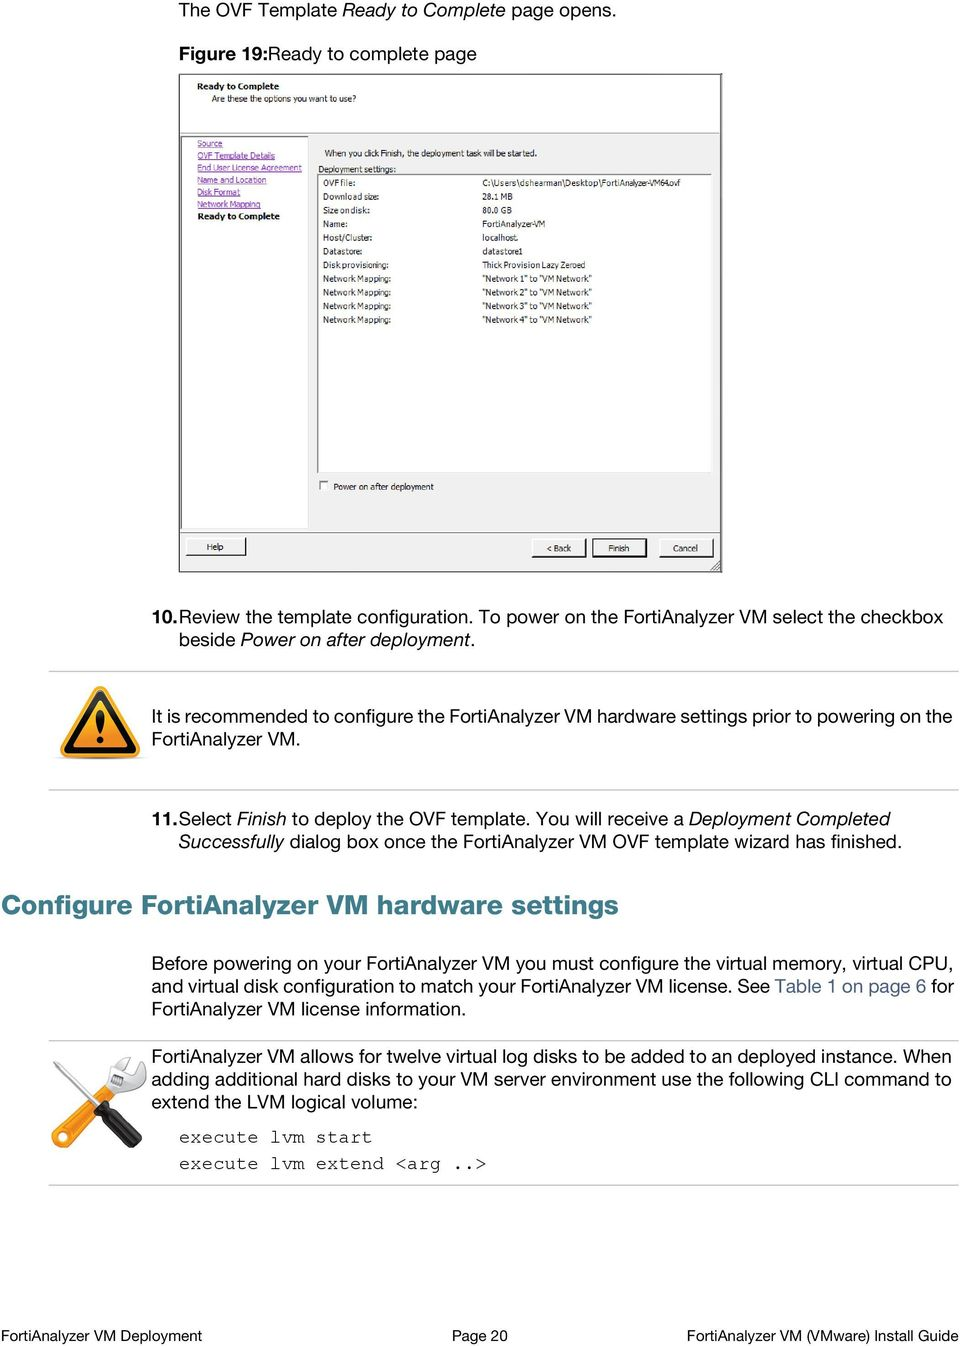 11.Select Finish to deploy the OVF template. You will receive a Deployment Completed Successfully dialog box once the FortiAnalyzer VM OVF template wizard has finished.